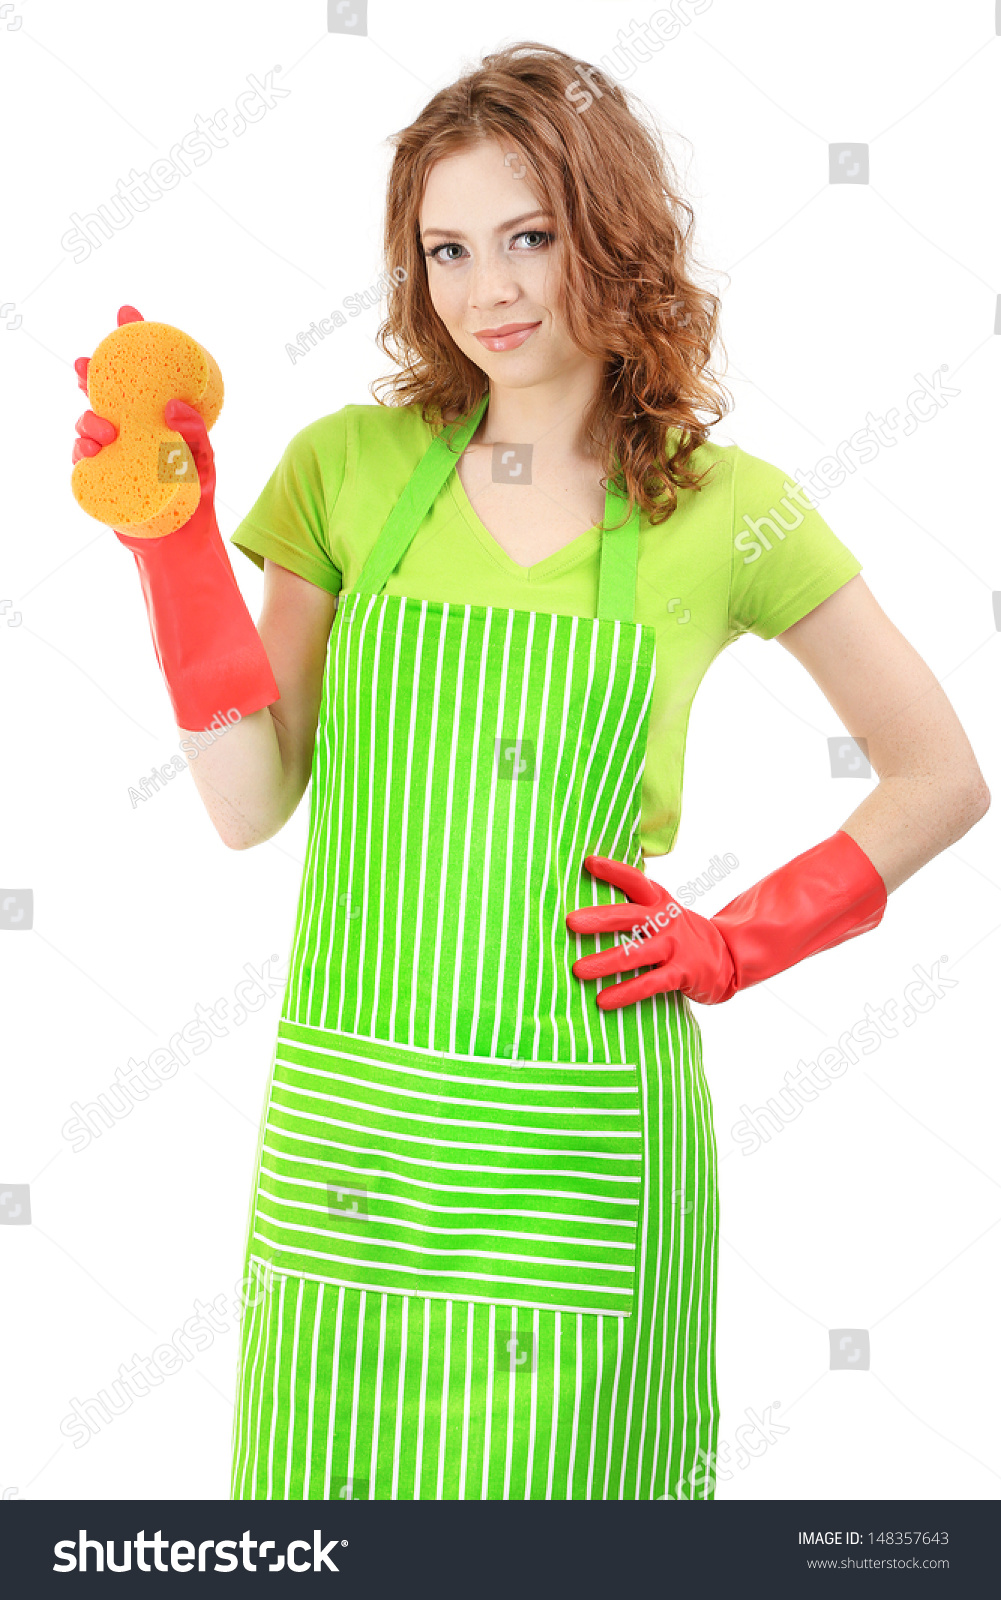 White apron project - White Apron Green Thumb Young Woman Wearing Green Apron And Rubber Gloves With Sponge Isolated